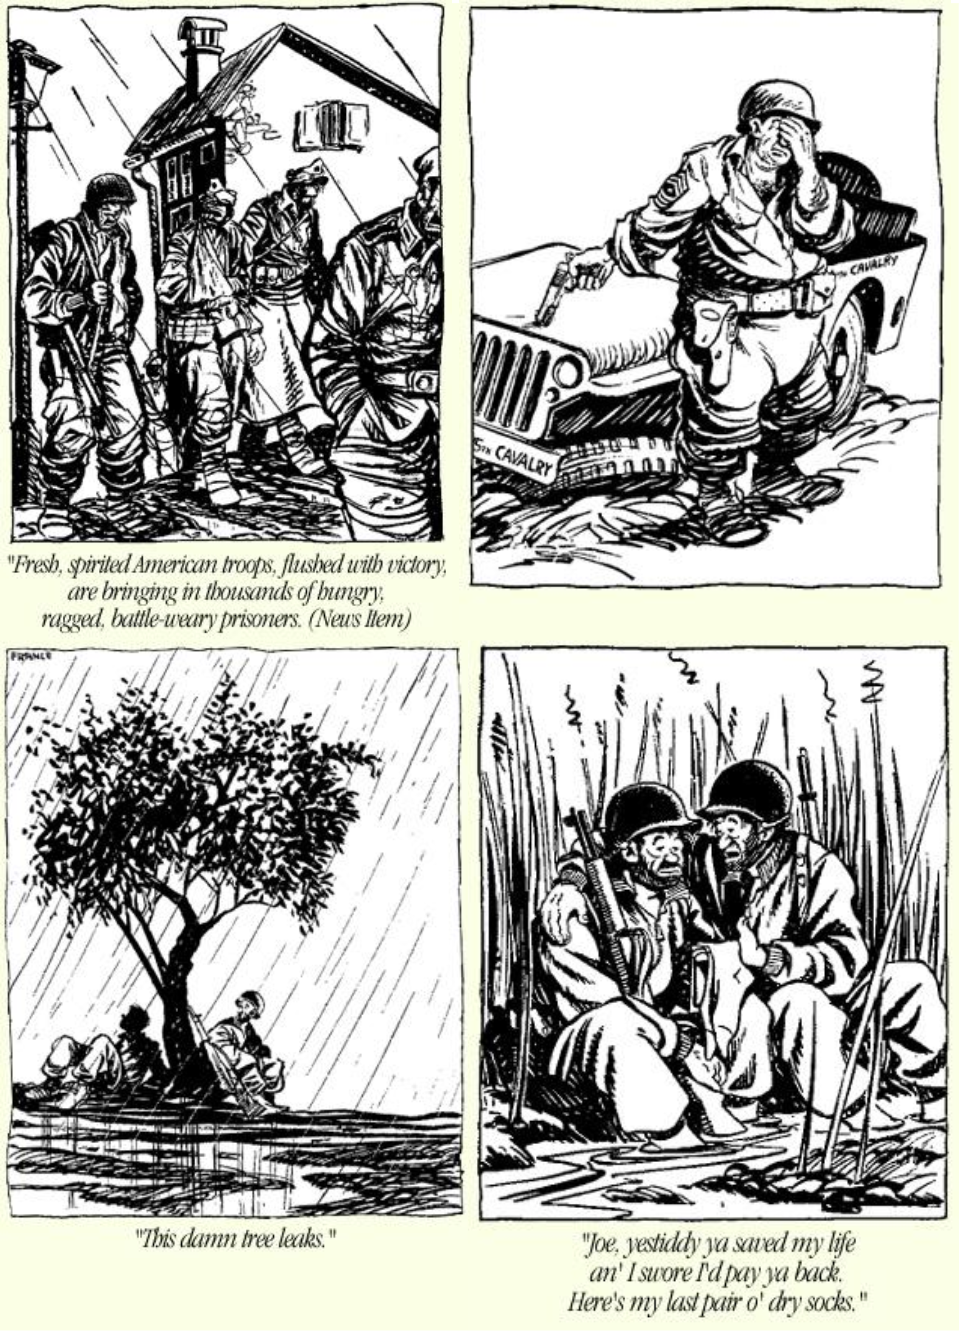 Top left: Mauldin's Pulitzer Prize winning cartoon illustrating the difference between the reality of war and the media's portrayal of it. Top right: Mauldin's self-confessed favorite cartoon. Bottom row: Examples of Mauldin contrasting the humor and difficulties of war for the average Soldier.